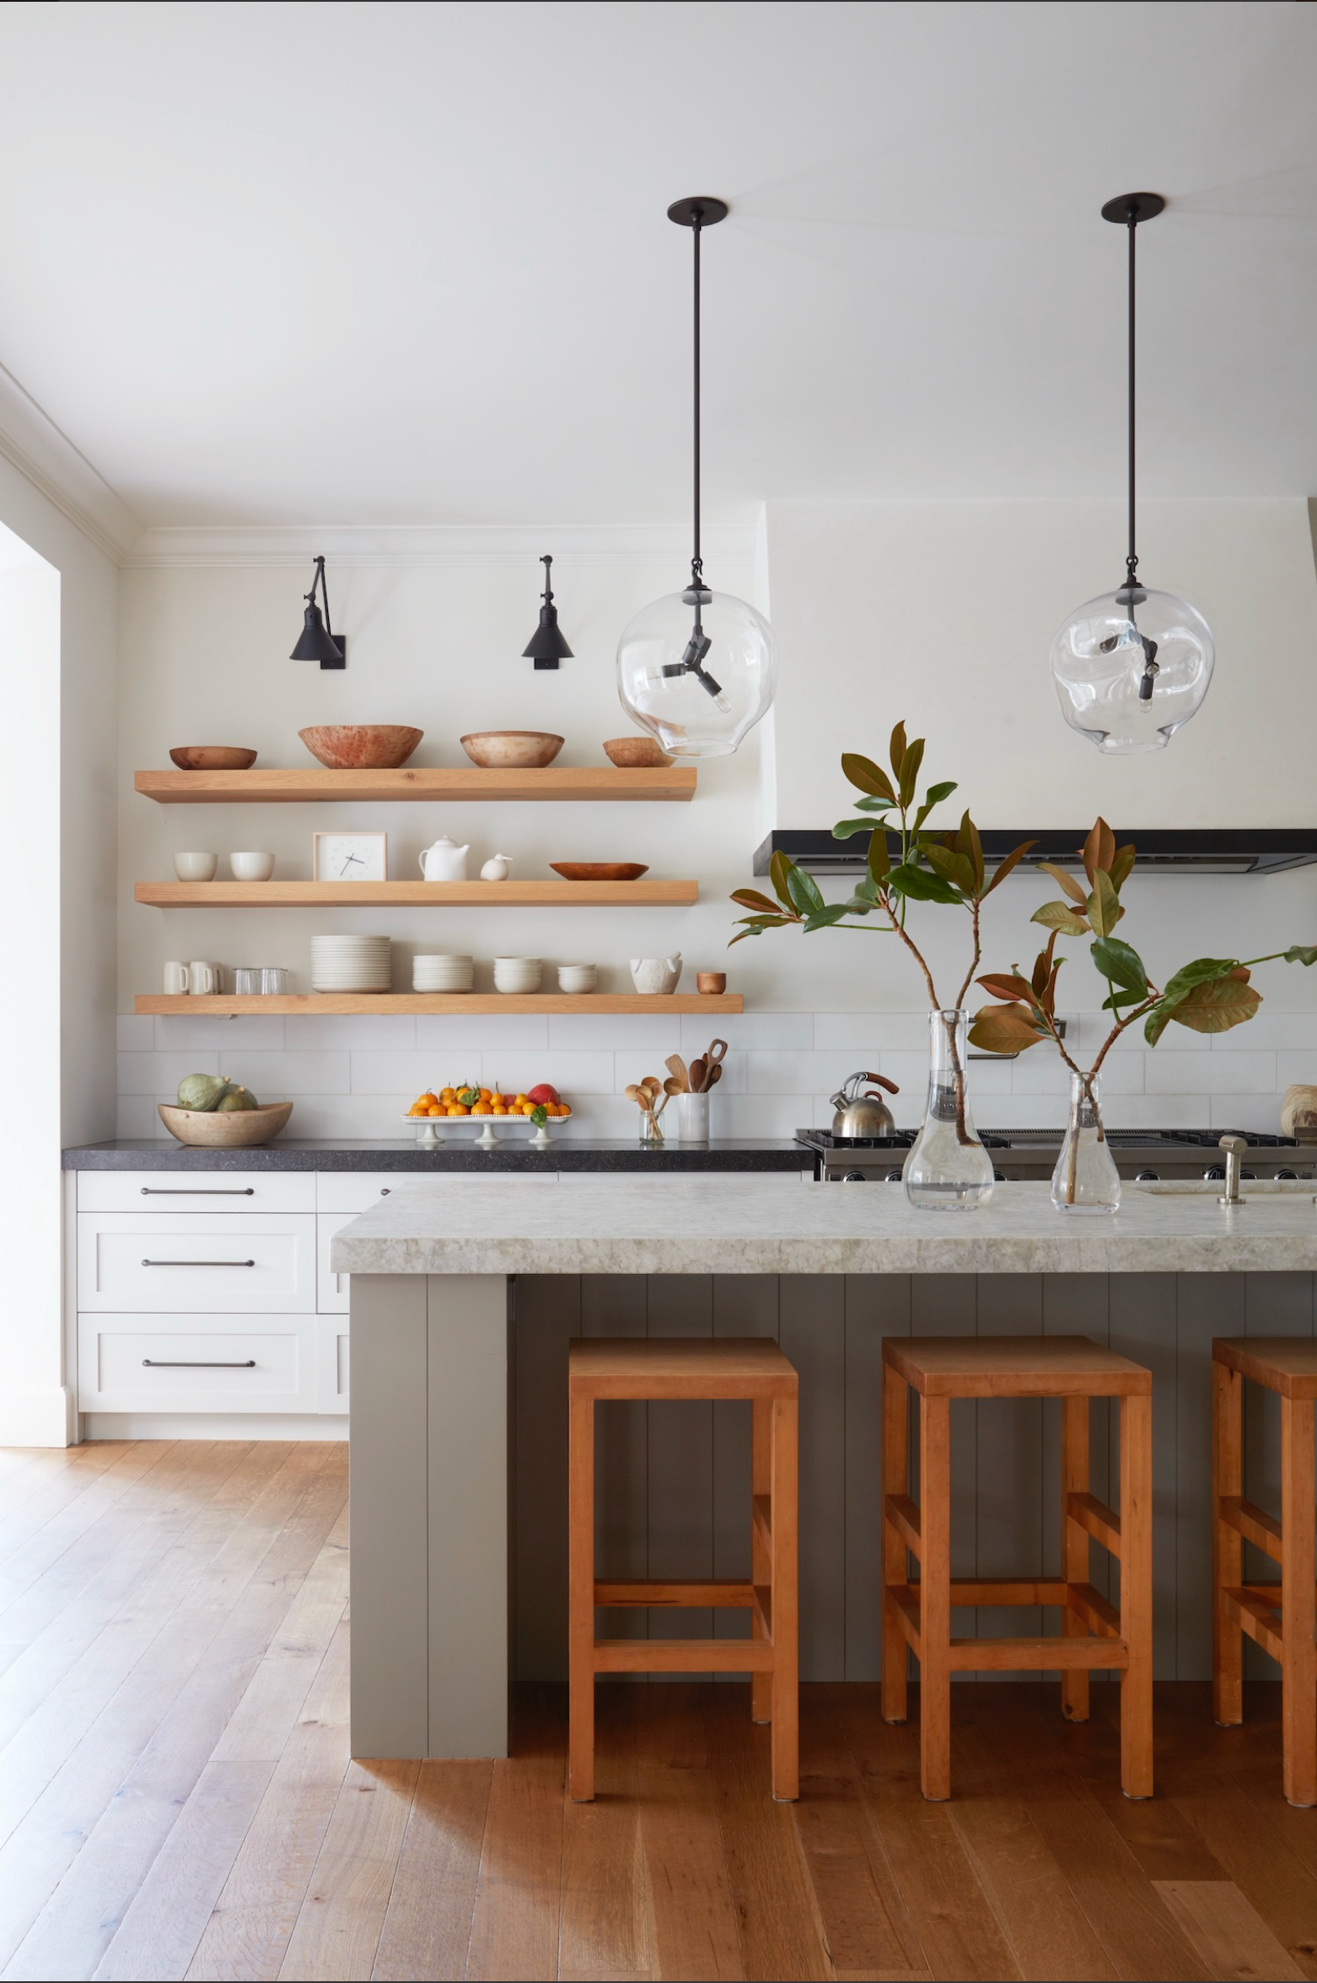 2020 Kitchen Trends.2020 Top 15 Interior Design Trends From Interior Designer